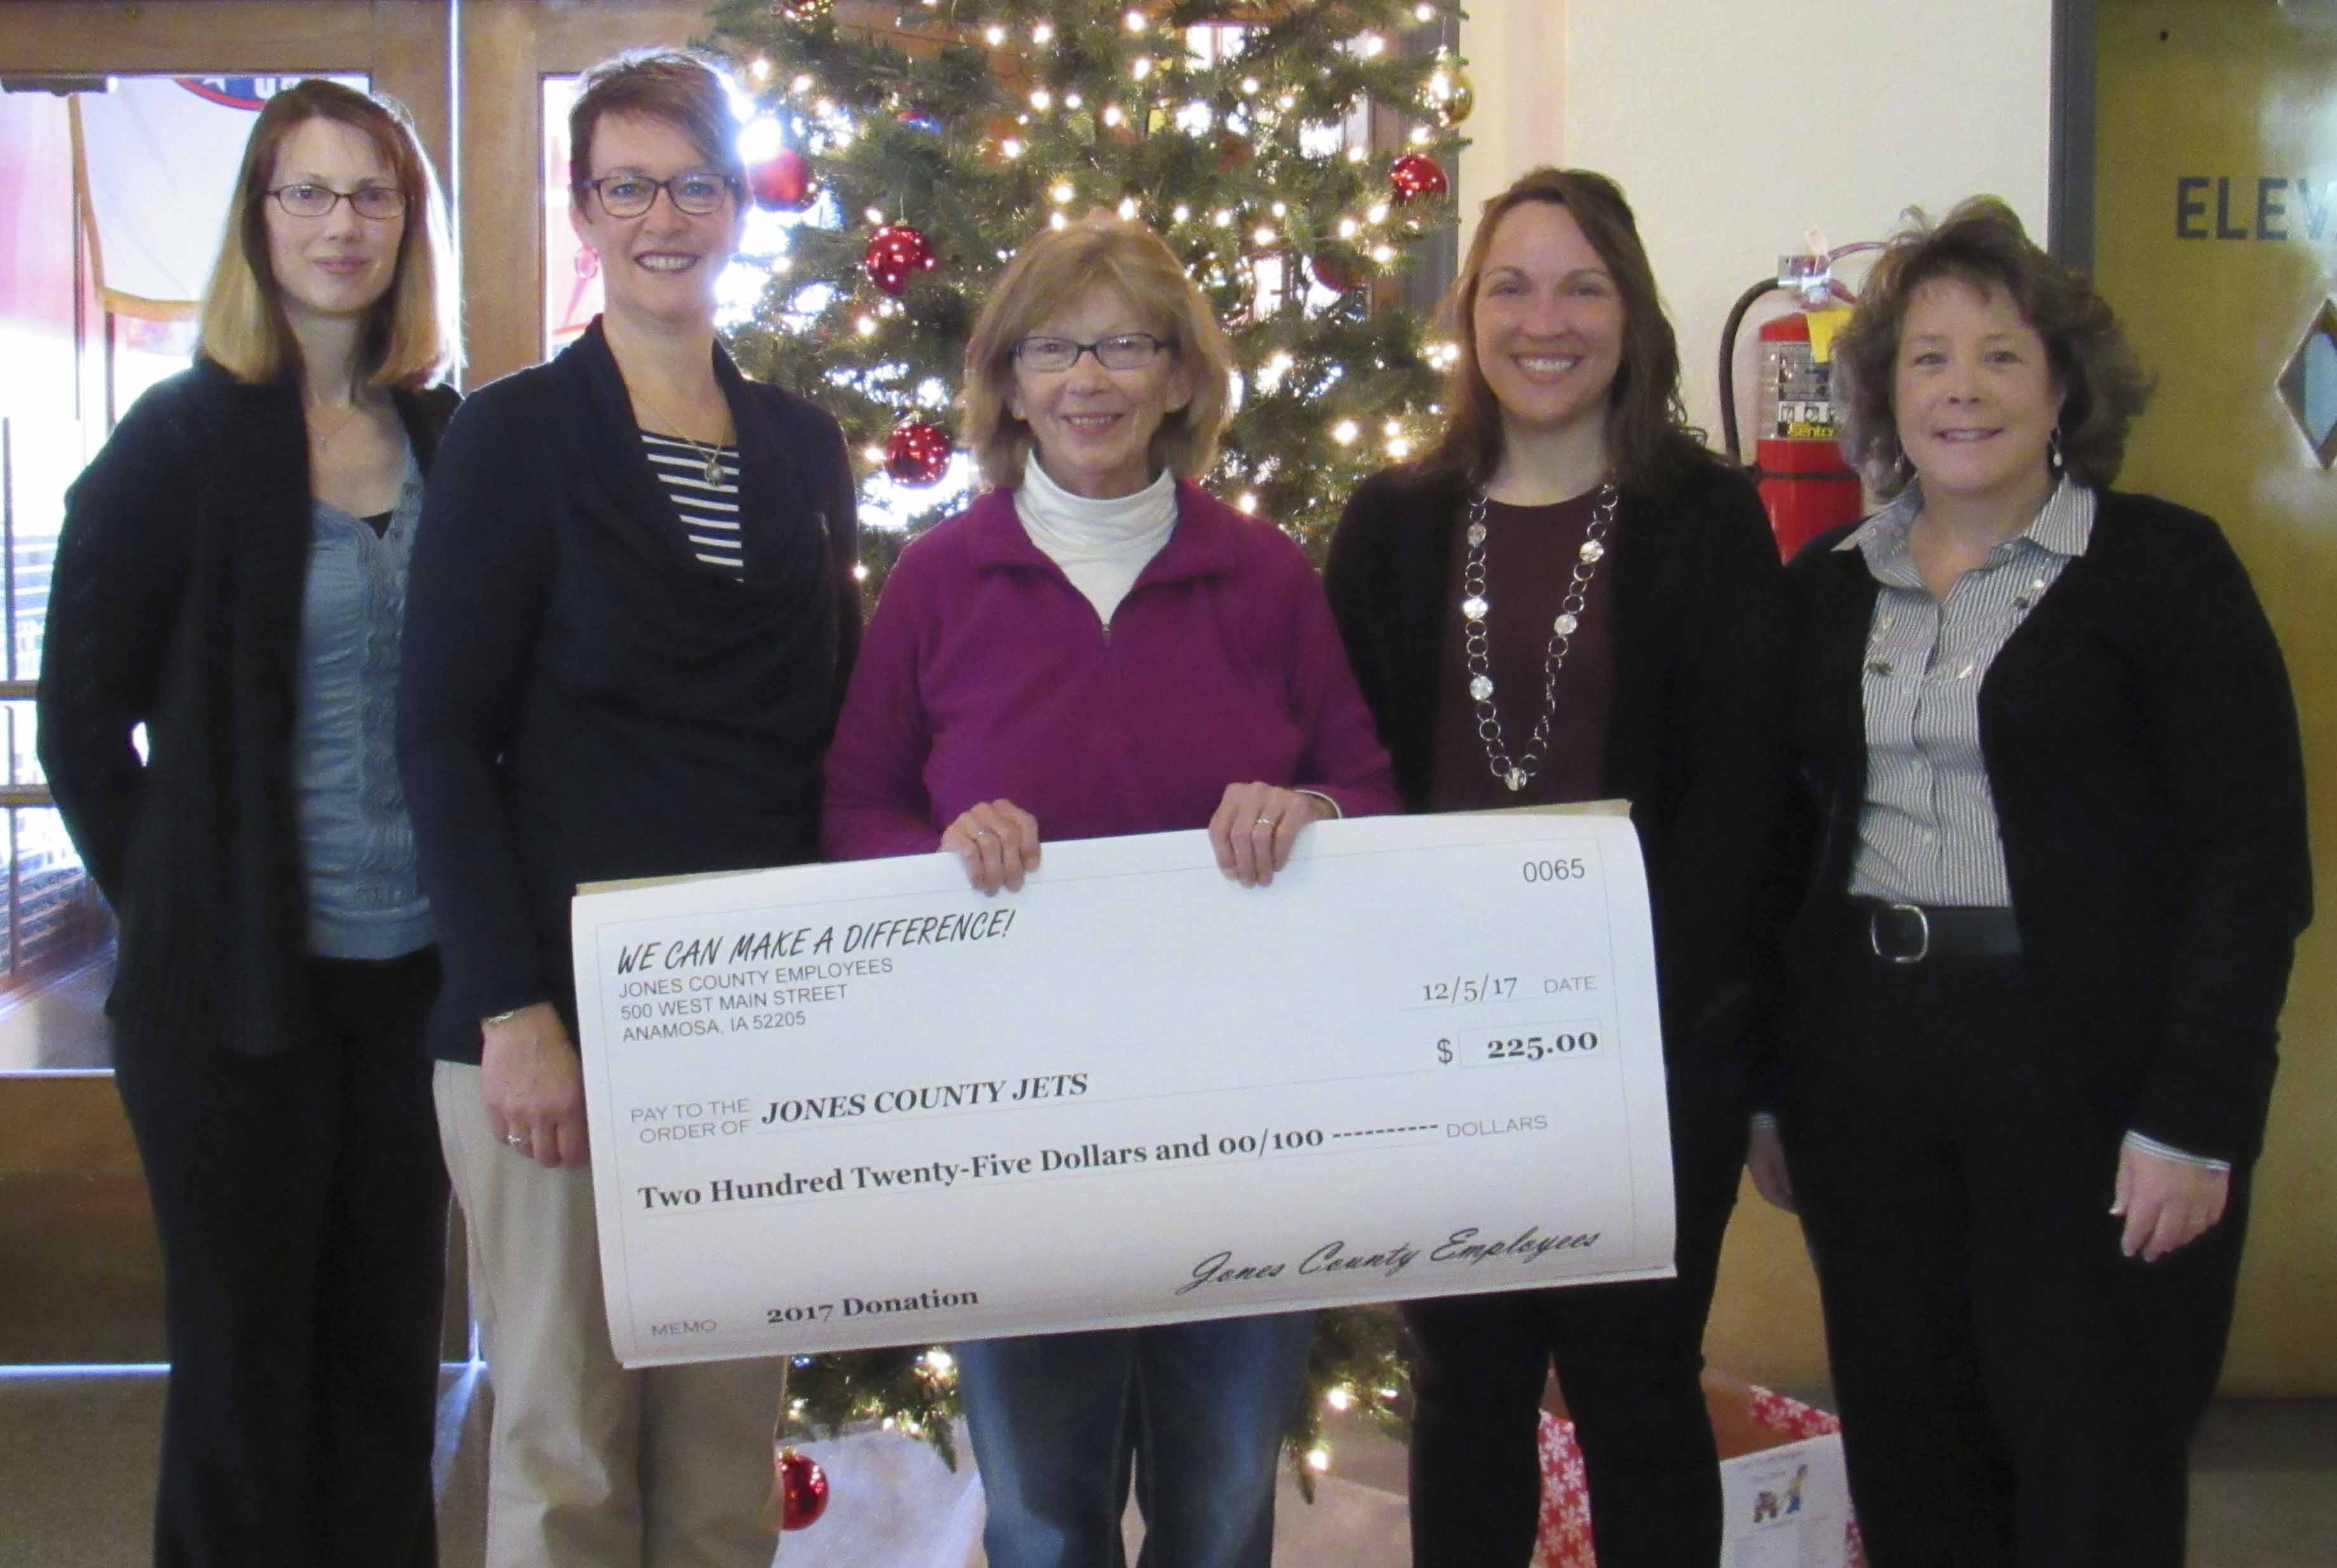 Karen Kiburz with JETS accepted a check for $225. From left are Deputy Auditor Michele Lubben, Recorder Sheri Jones, Kiburz, Deputy Assessor Jane Russell, and Early Childhood Iowa Coordinator Sherri Hunt.